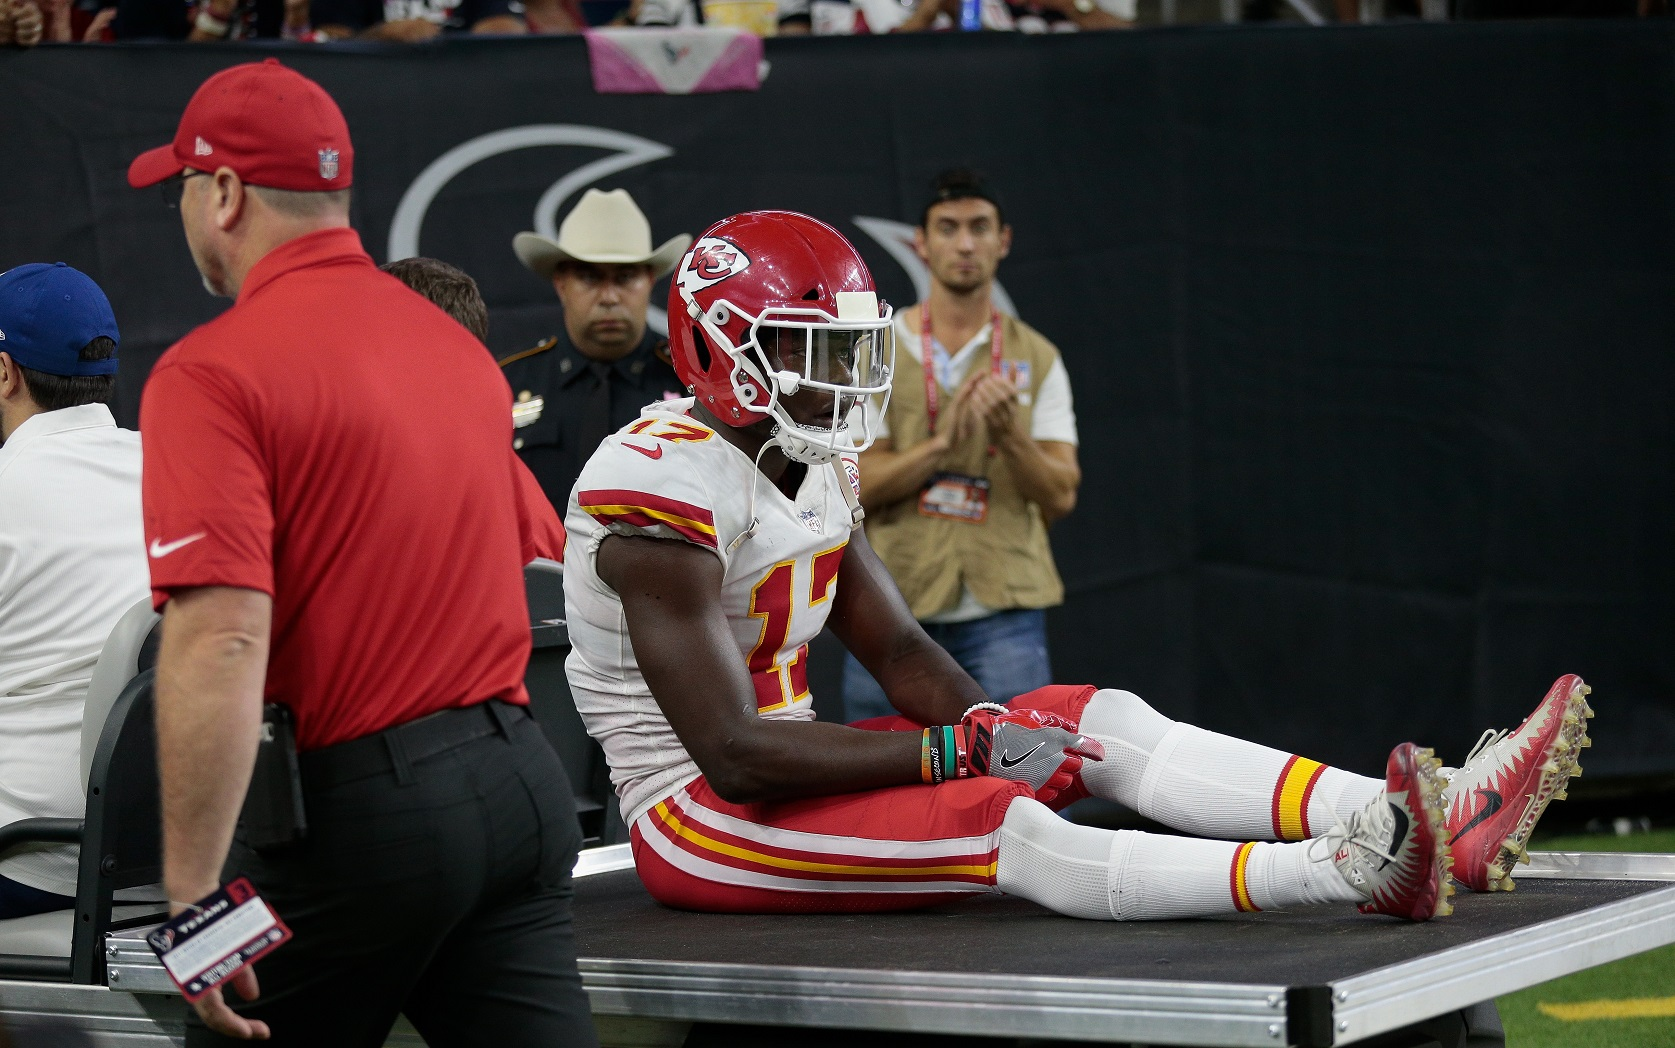 Chiefs Chew Up Texans to Remain Undefeated